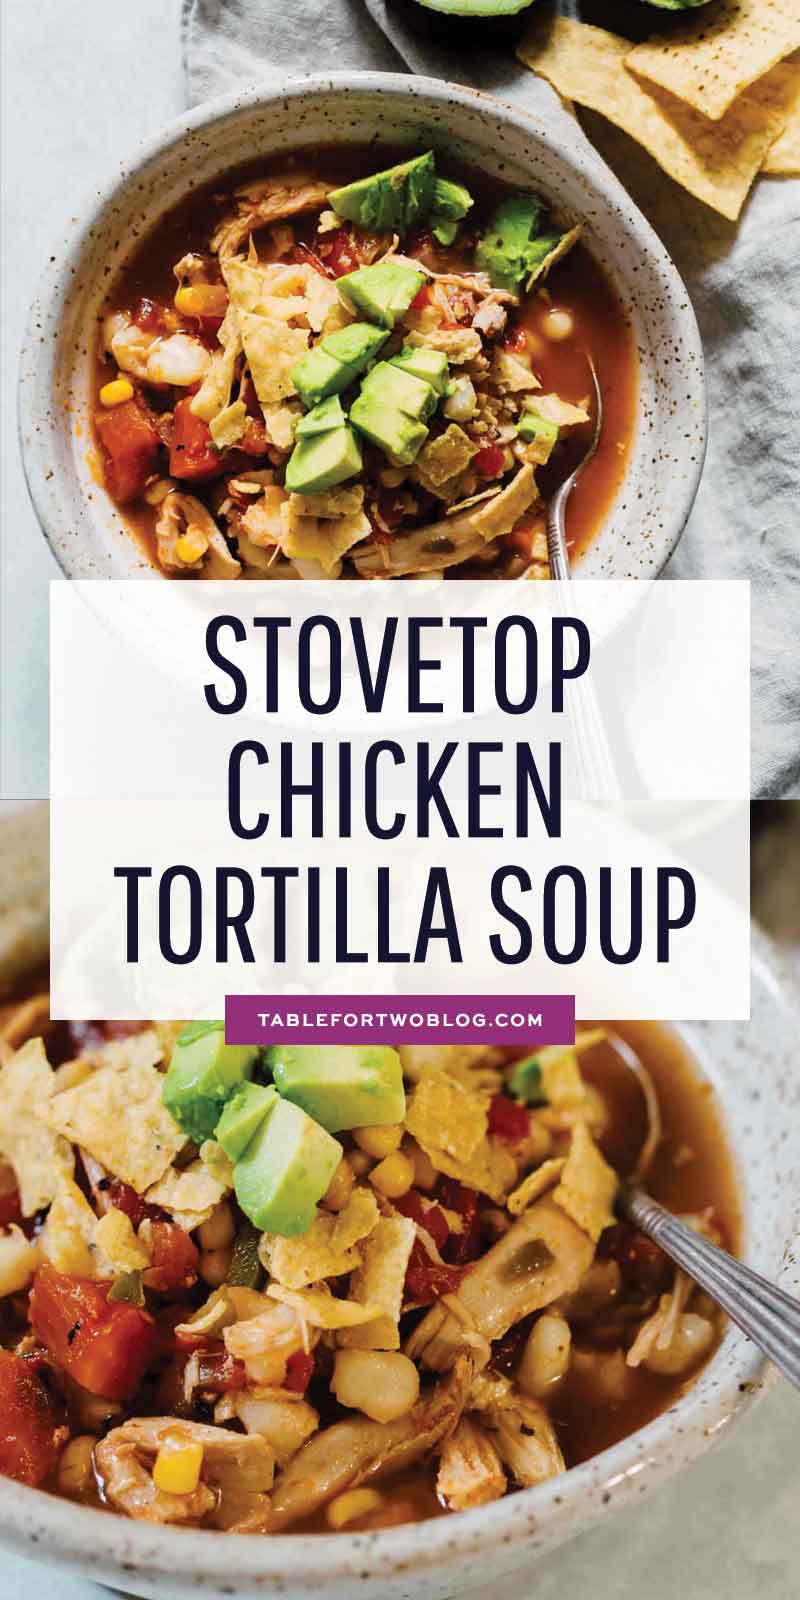 This chicken tortilla soup made on the stovetop is deliciously flavorful and spicy! You'll love how quickly it comes together and all the textures throughout the soup! The broth is SO good you'll be going back for more bowls! #soup #souprecipes #chicken #tortillasoup #chickenrecipes #soupfordinner #dinnerideas